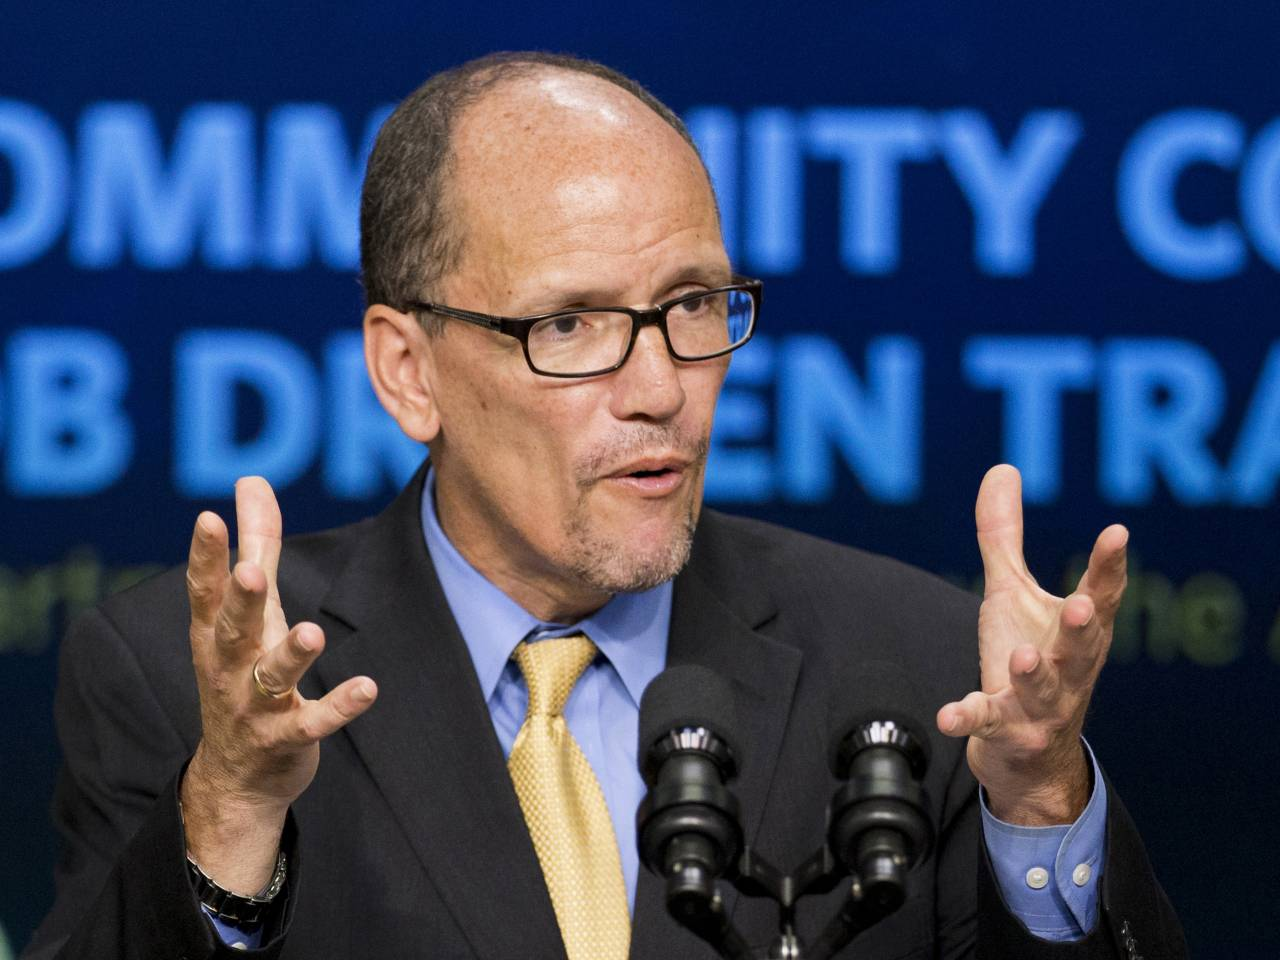 Tom Perez elected new DNC chairman, beating out Rep. Keith Ellison